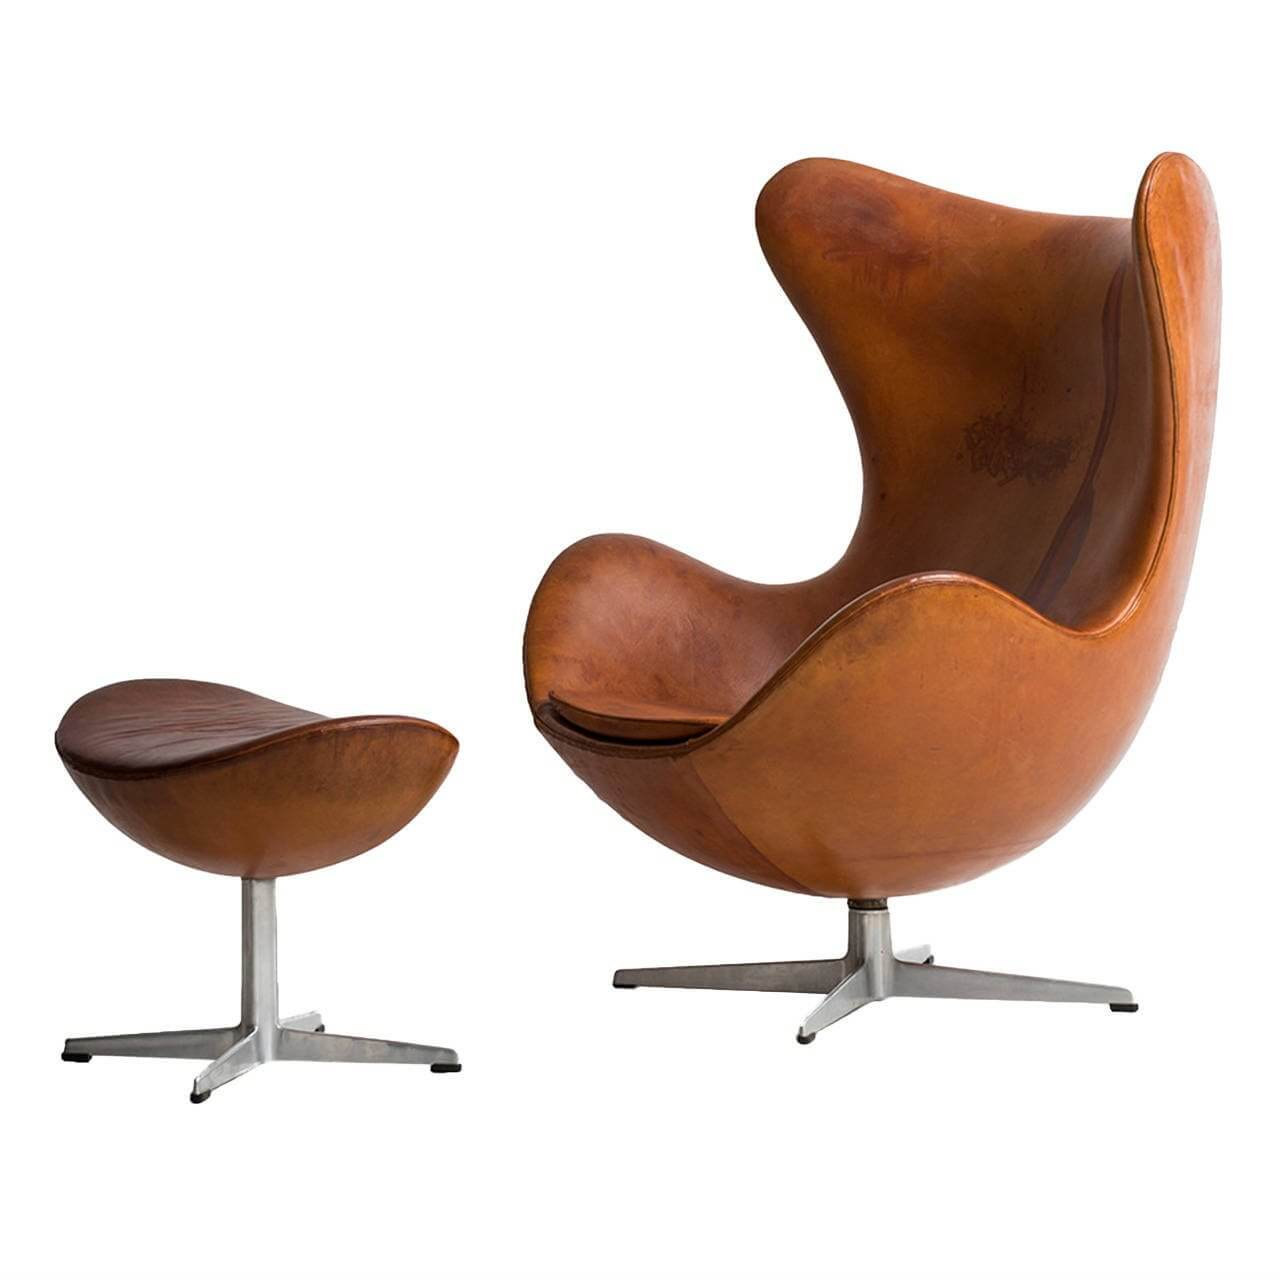 Arne Jacobseb Egg Chair